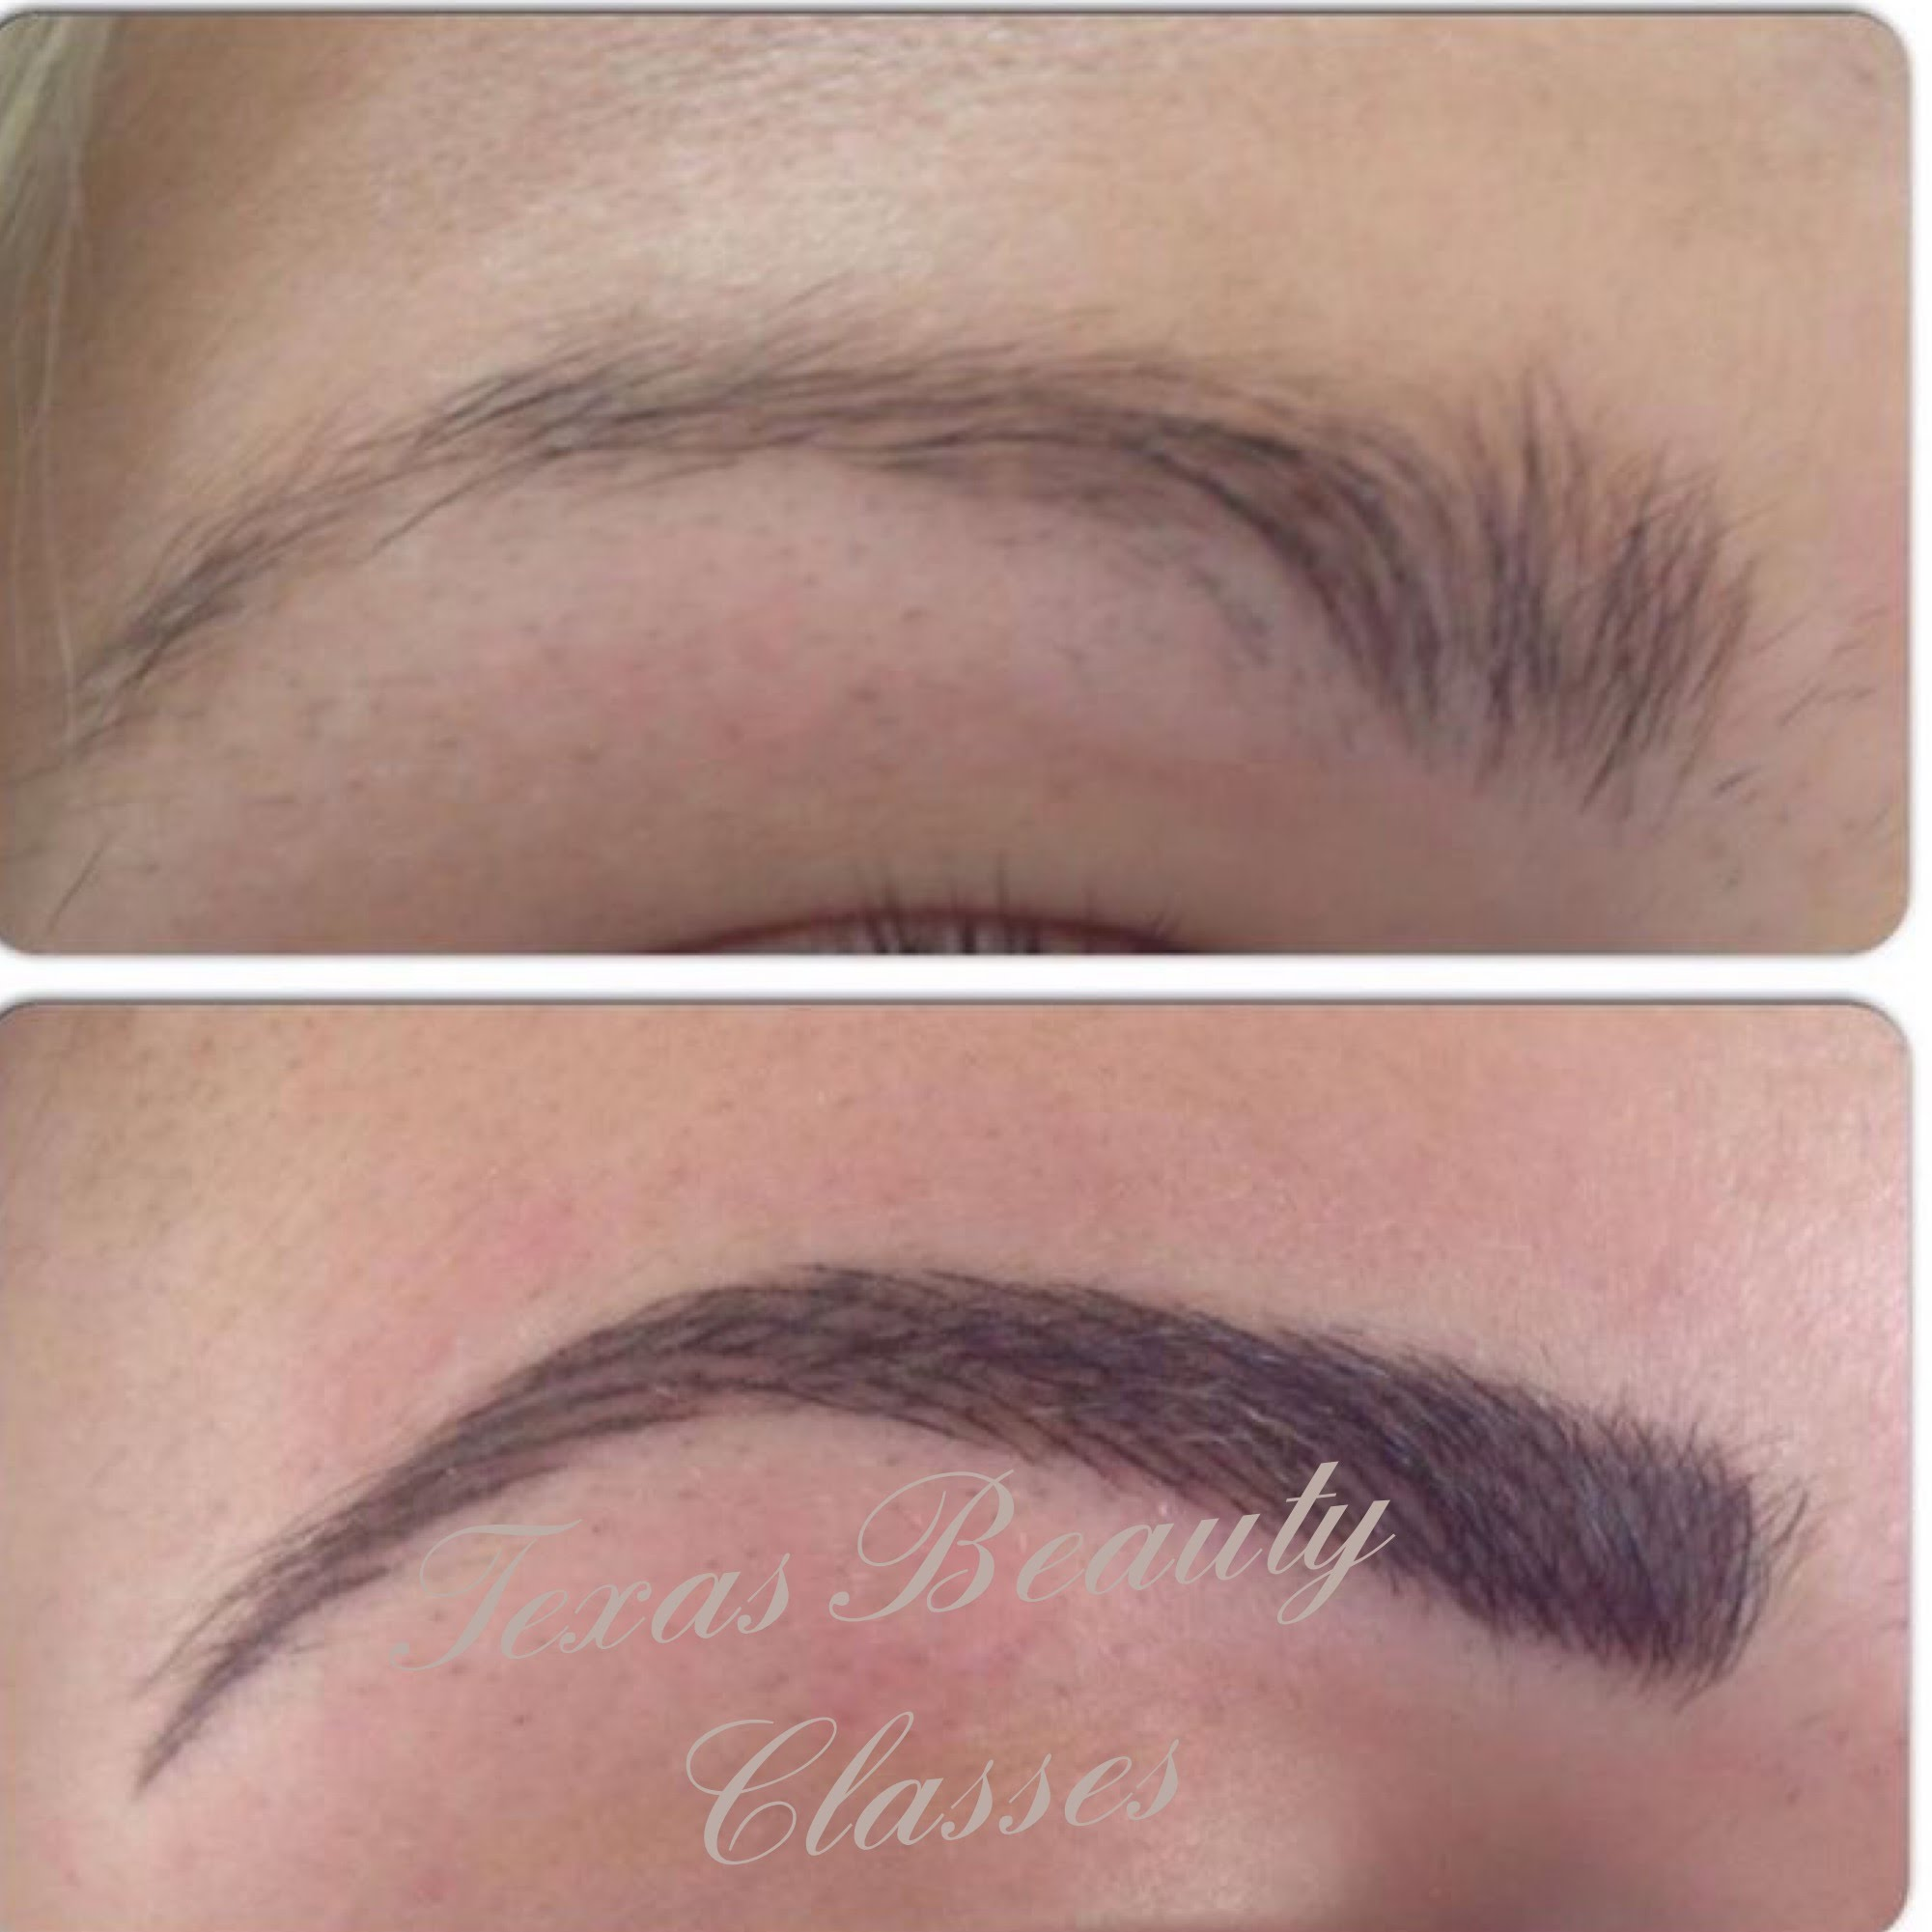 Microblading - Texas Beauty Classes